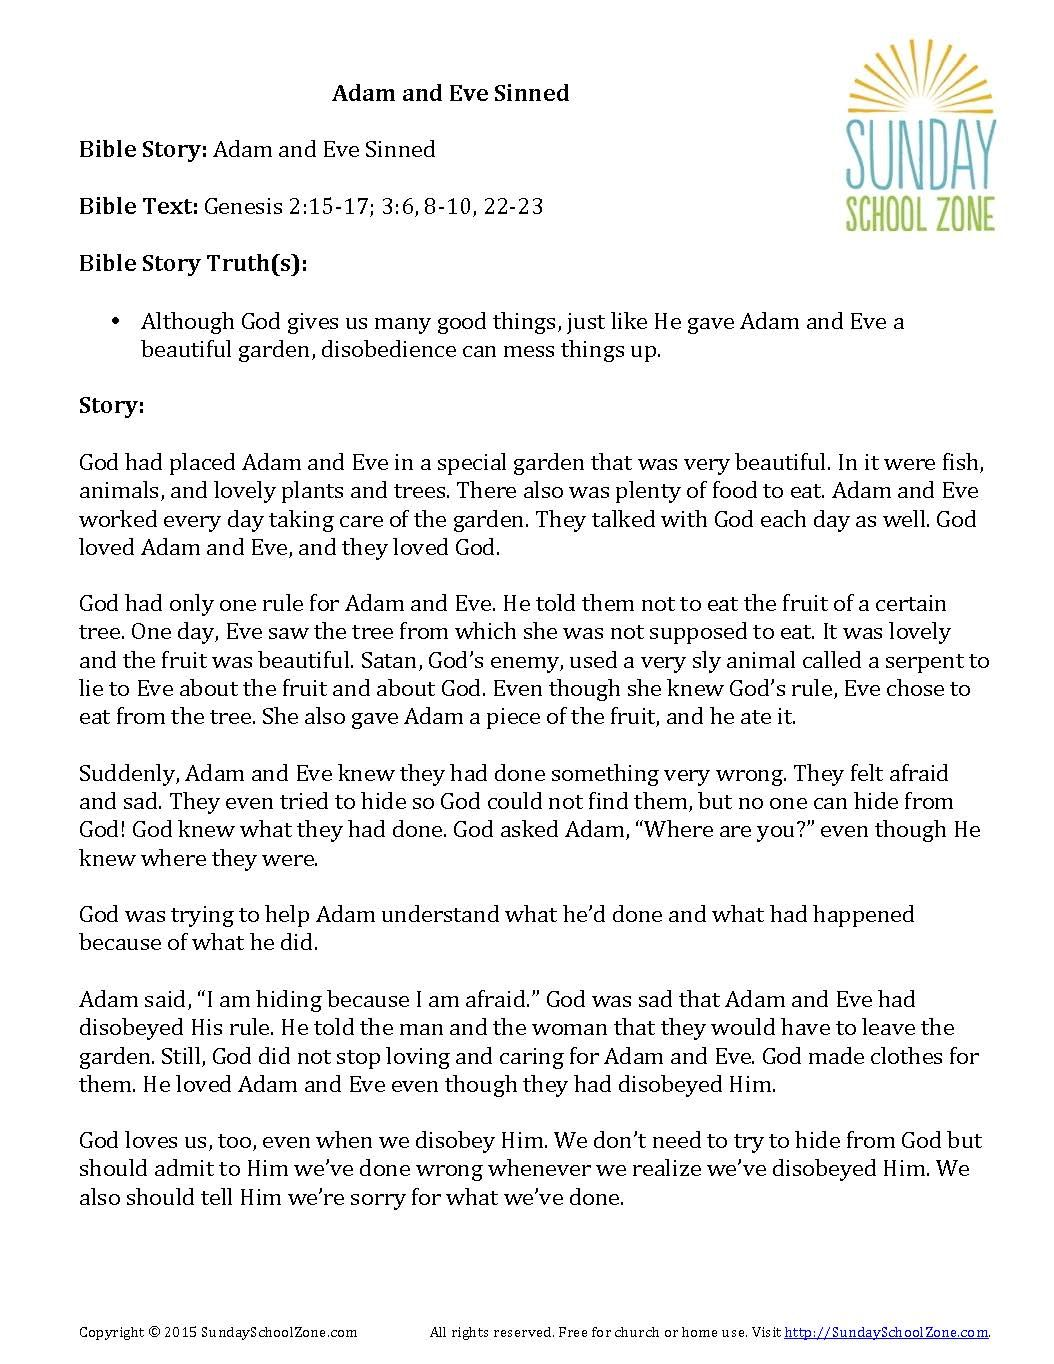 Adam And Eve Sinned Bible Story Summary